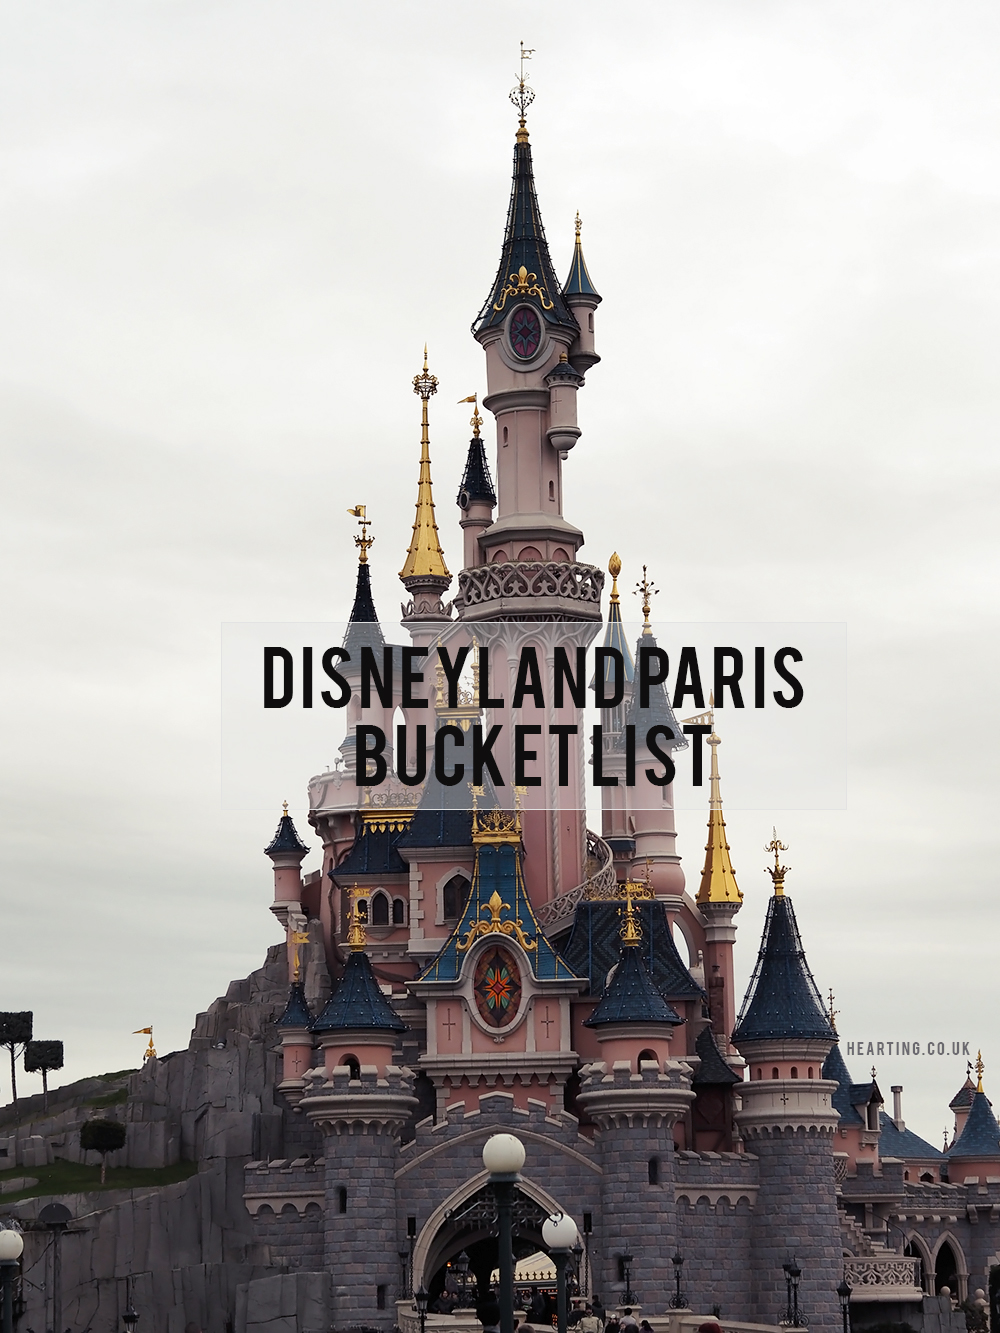 Disneyland Paris Bucket List: 10 things I'd love to do when visiting Disneyland Paris this October